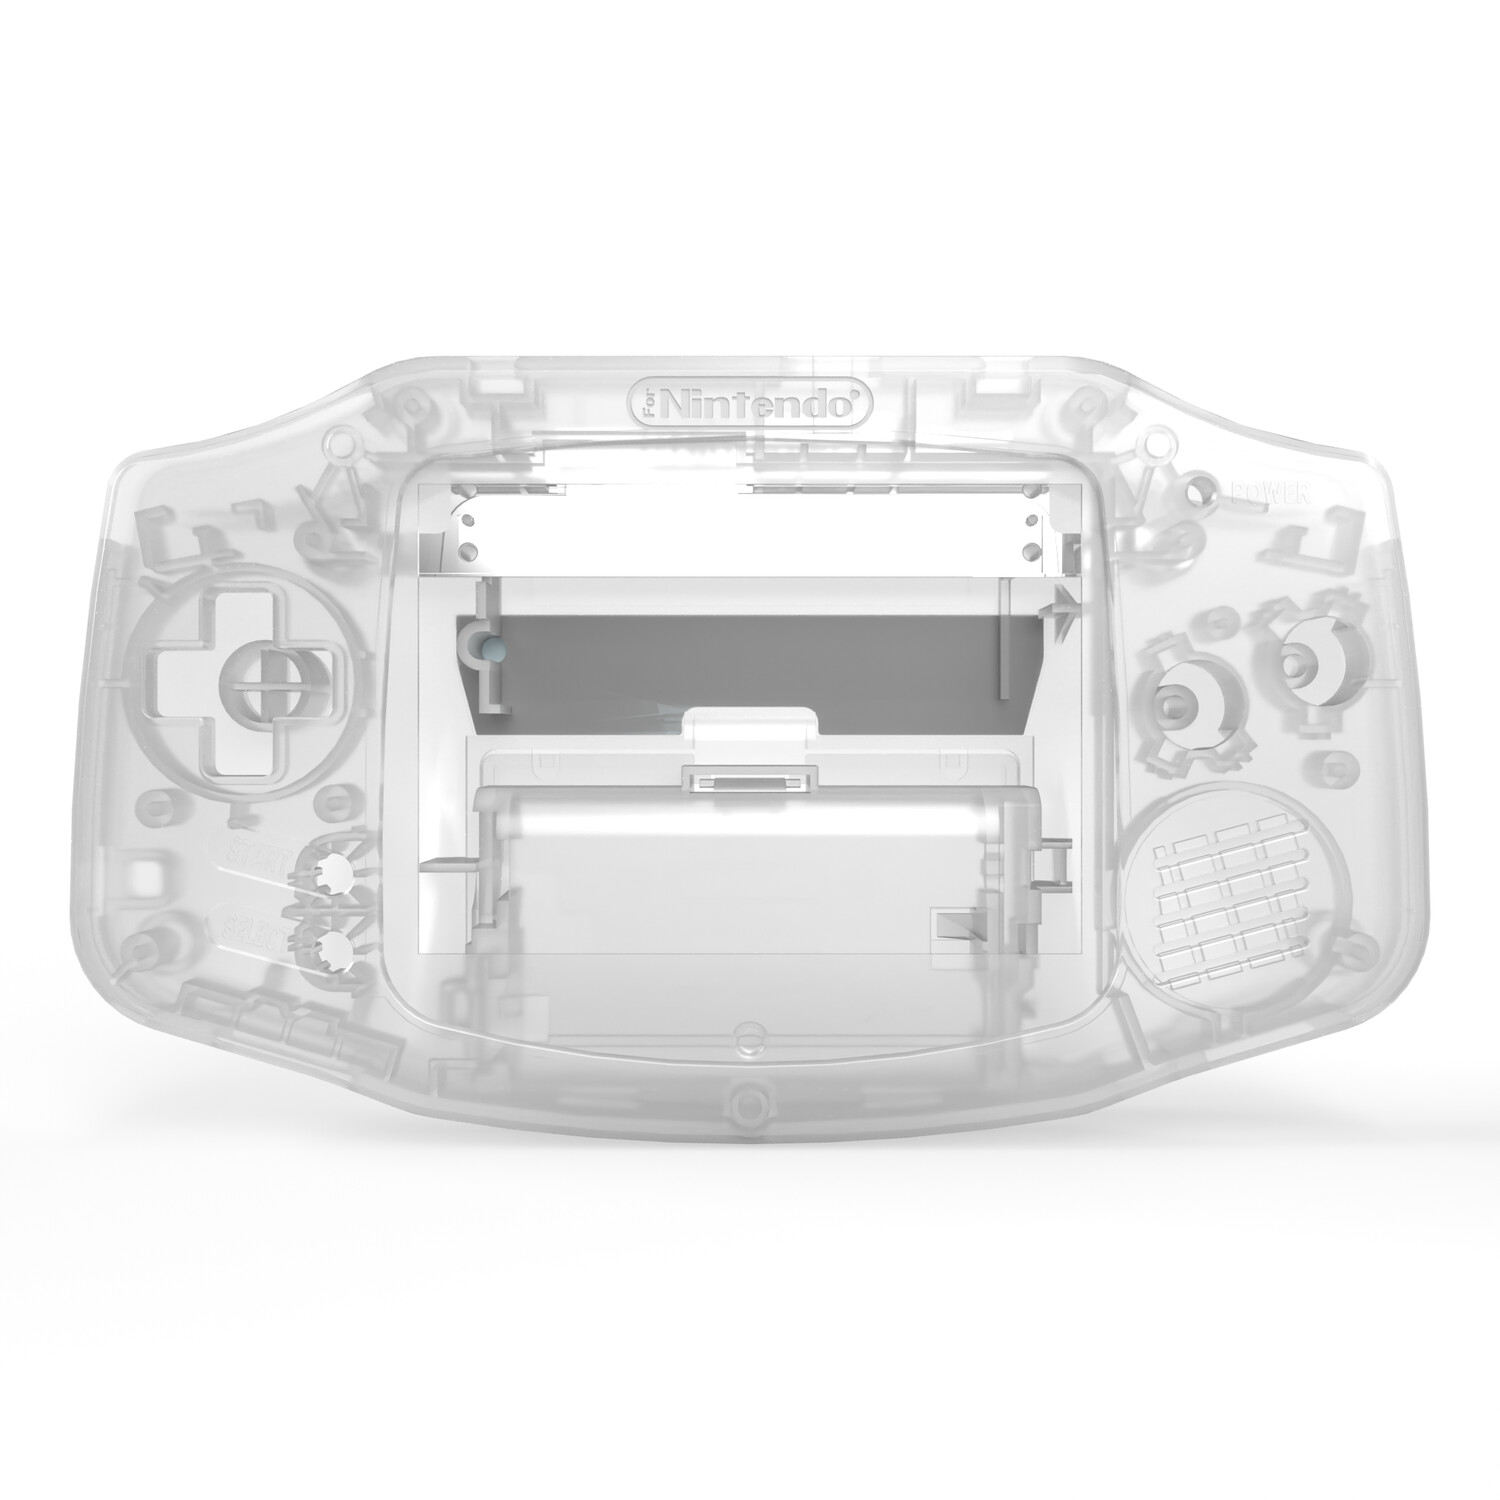 Game Boy Advance Shell Kit (Clear)